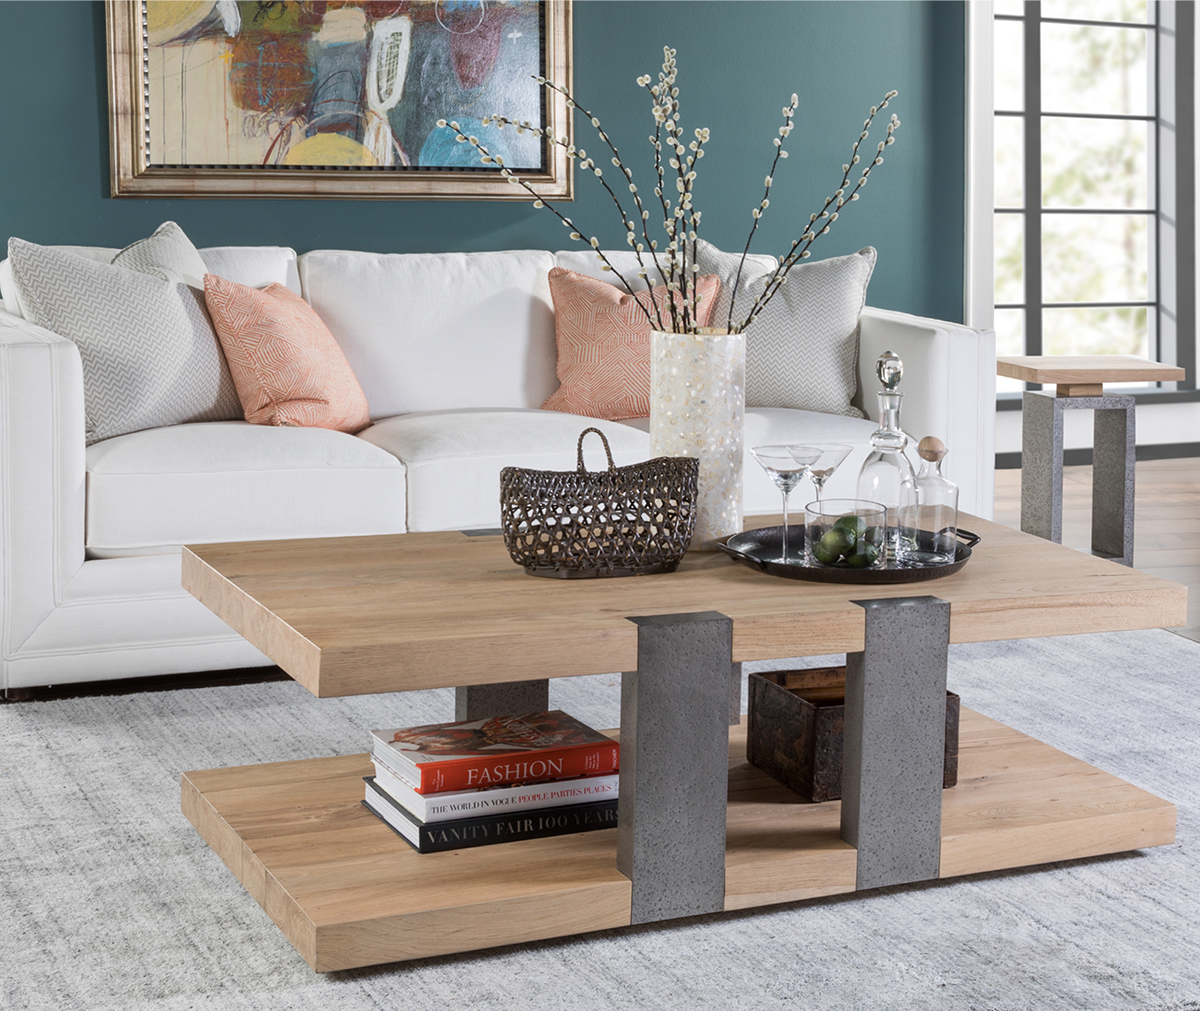 Lexington Home Brands_Verite Cocktail Table 2_int-products